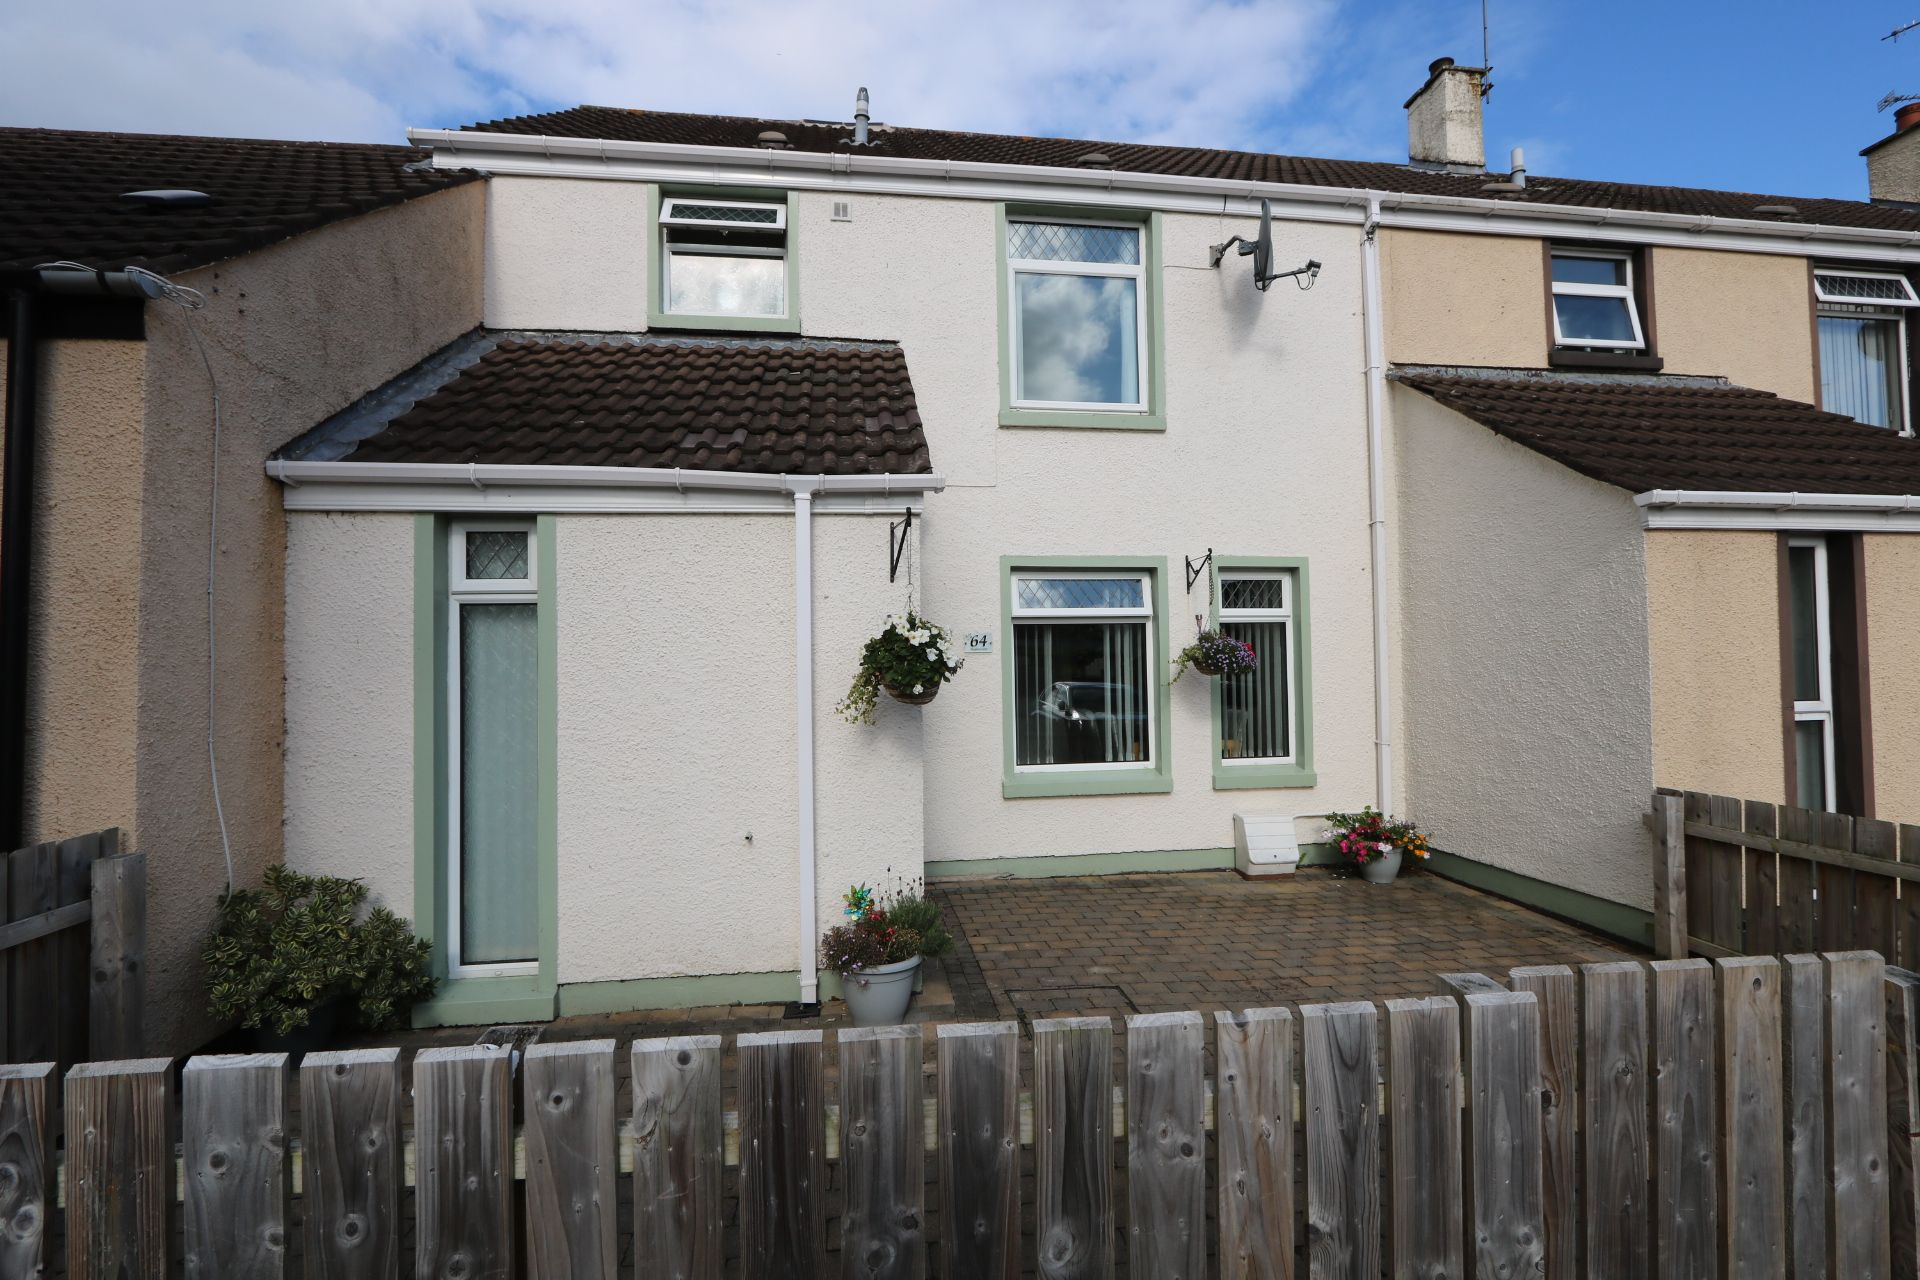 4 bedroom mid terraced house For Sale in Antrim - Property photograph